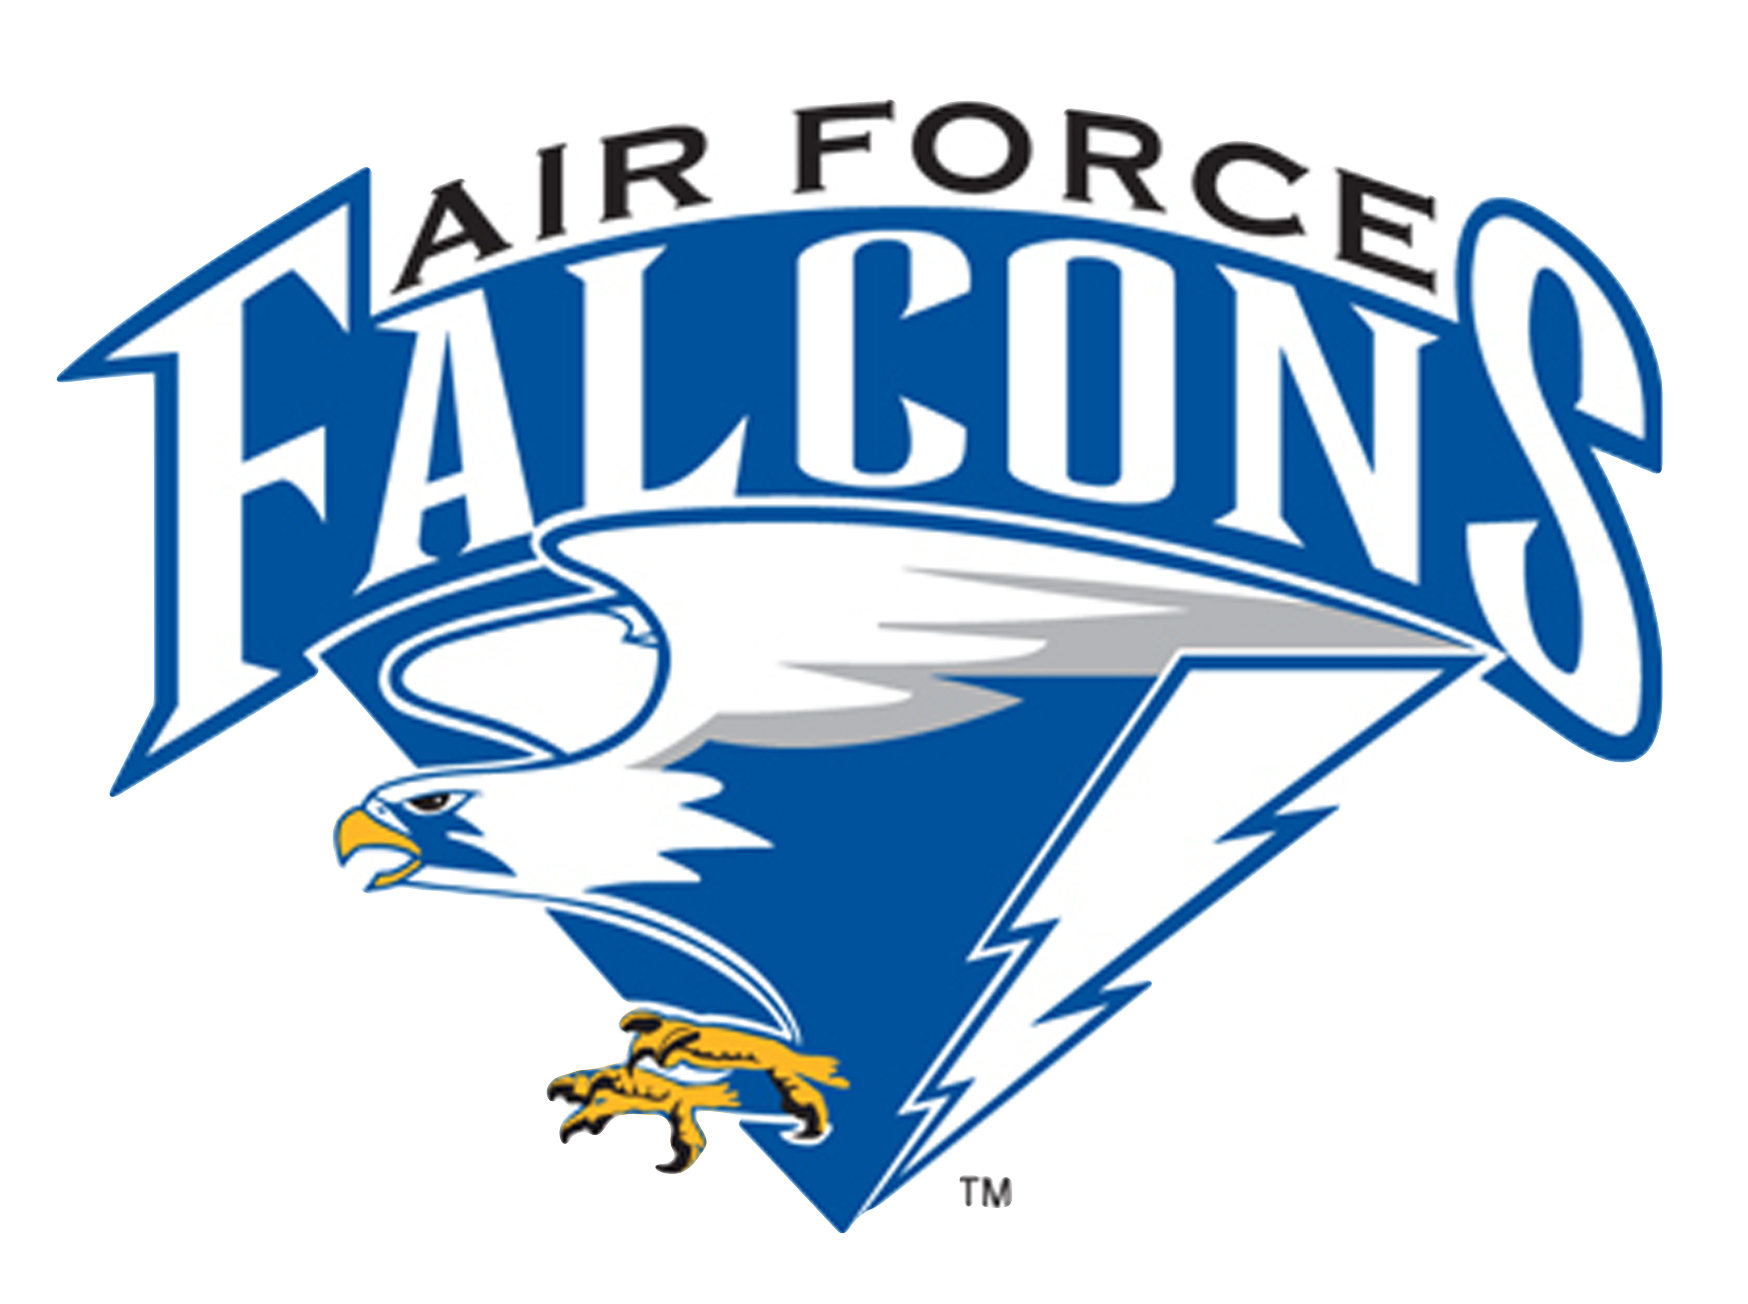 Air force academy logo clipart graphic free stock Air force academy logo clip art clipart images gallery for free ... graphic free stock